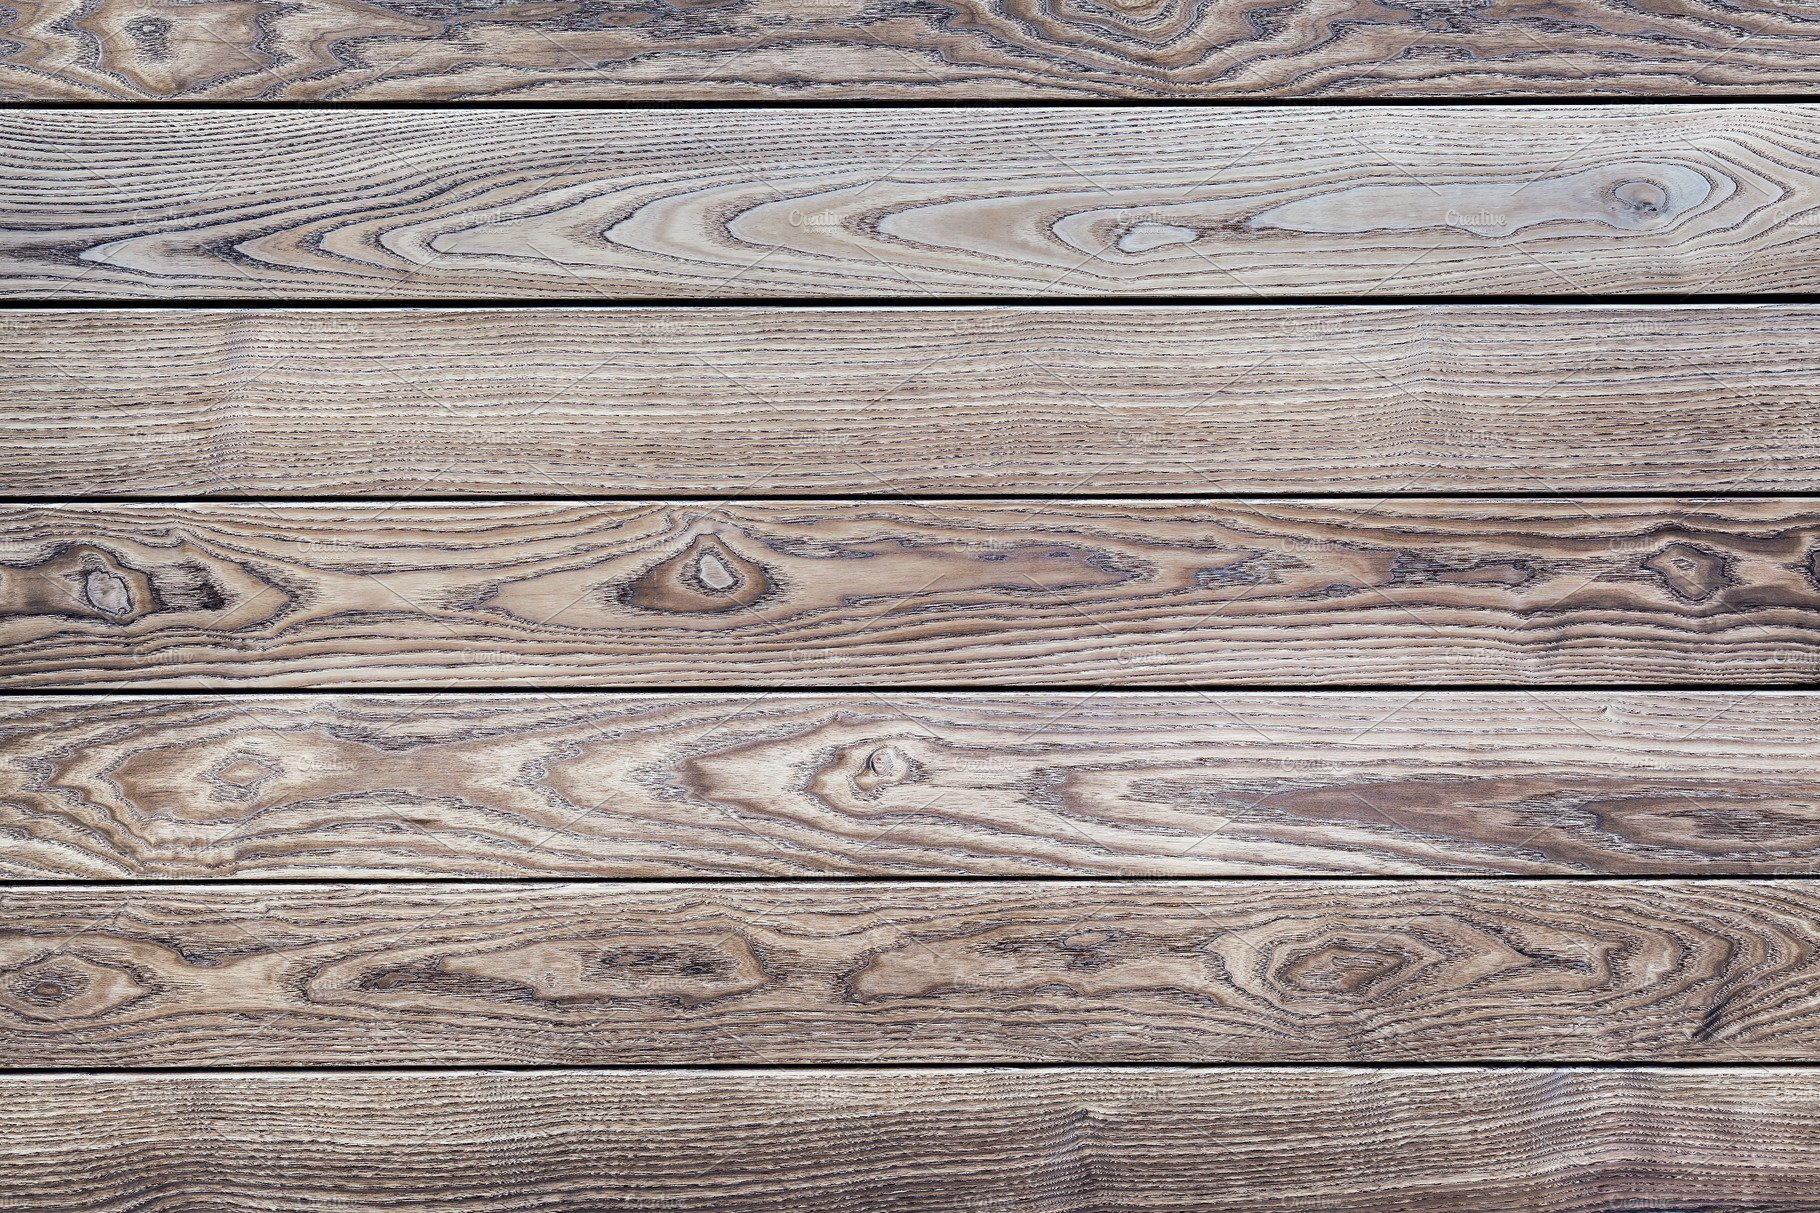 Rustic Wood Texture Background ~ Abstract Photos ...